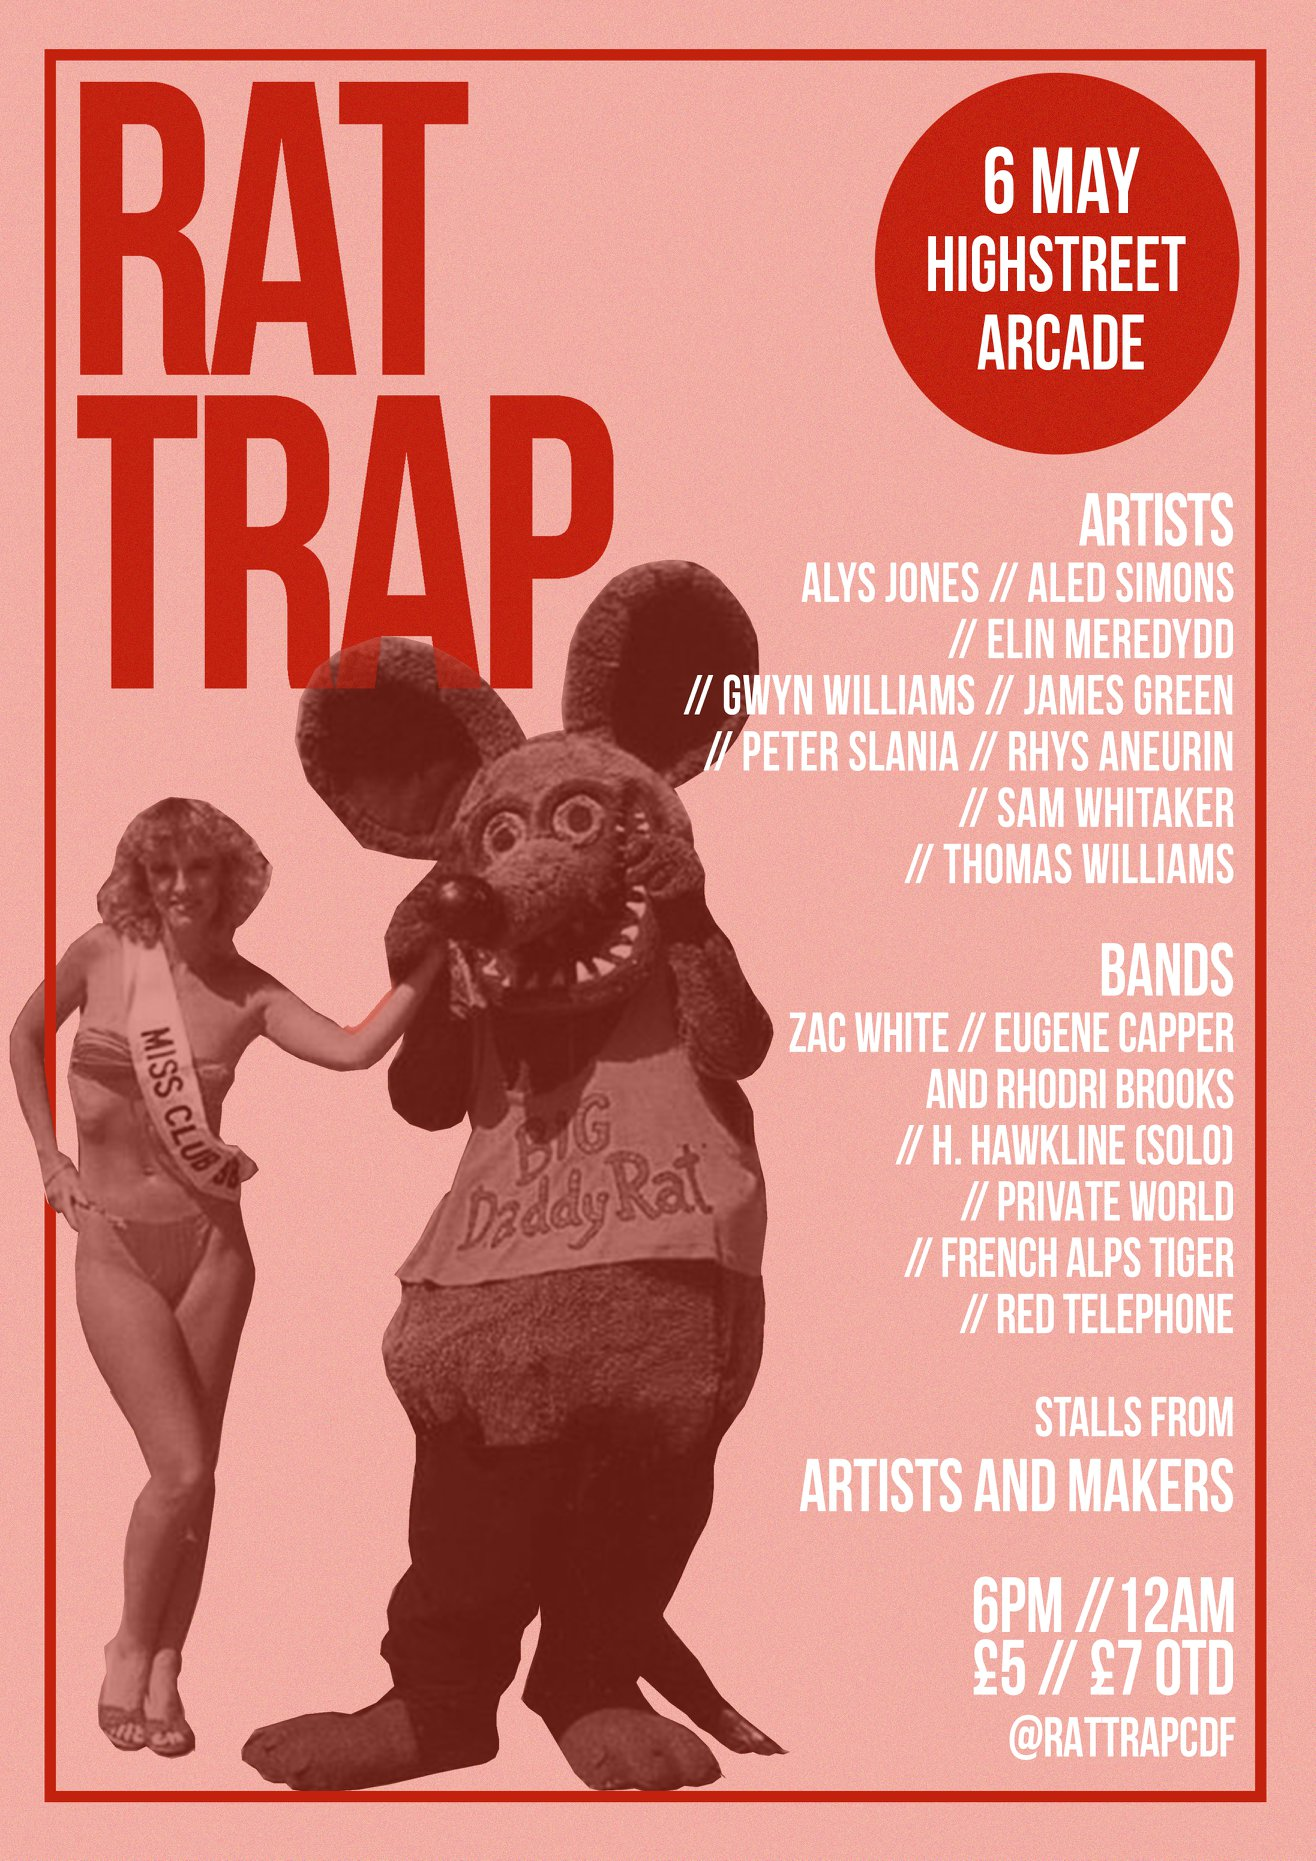 Rat Trap // Exhibition and Show // 06 • 05 • 18 at High Street